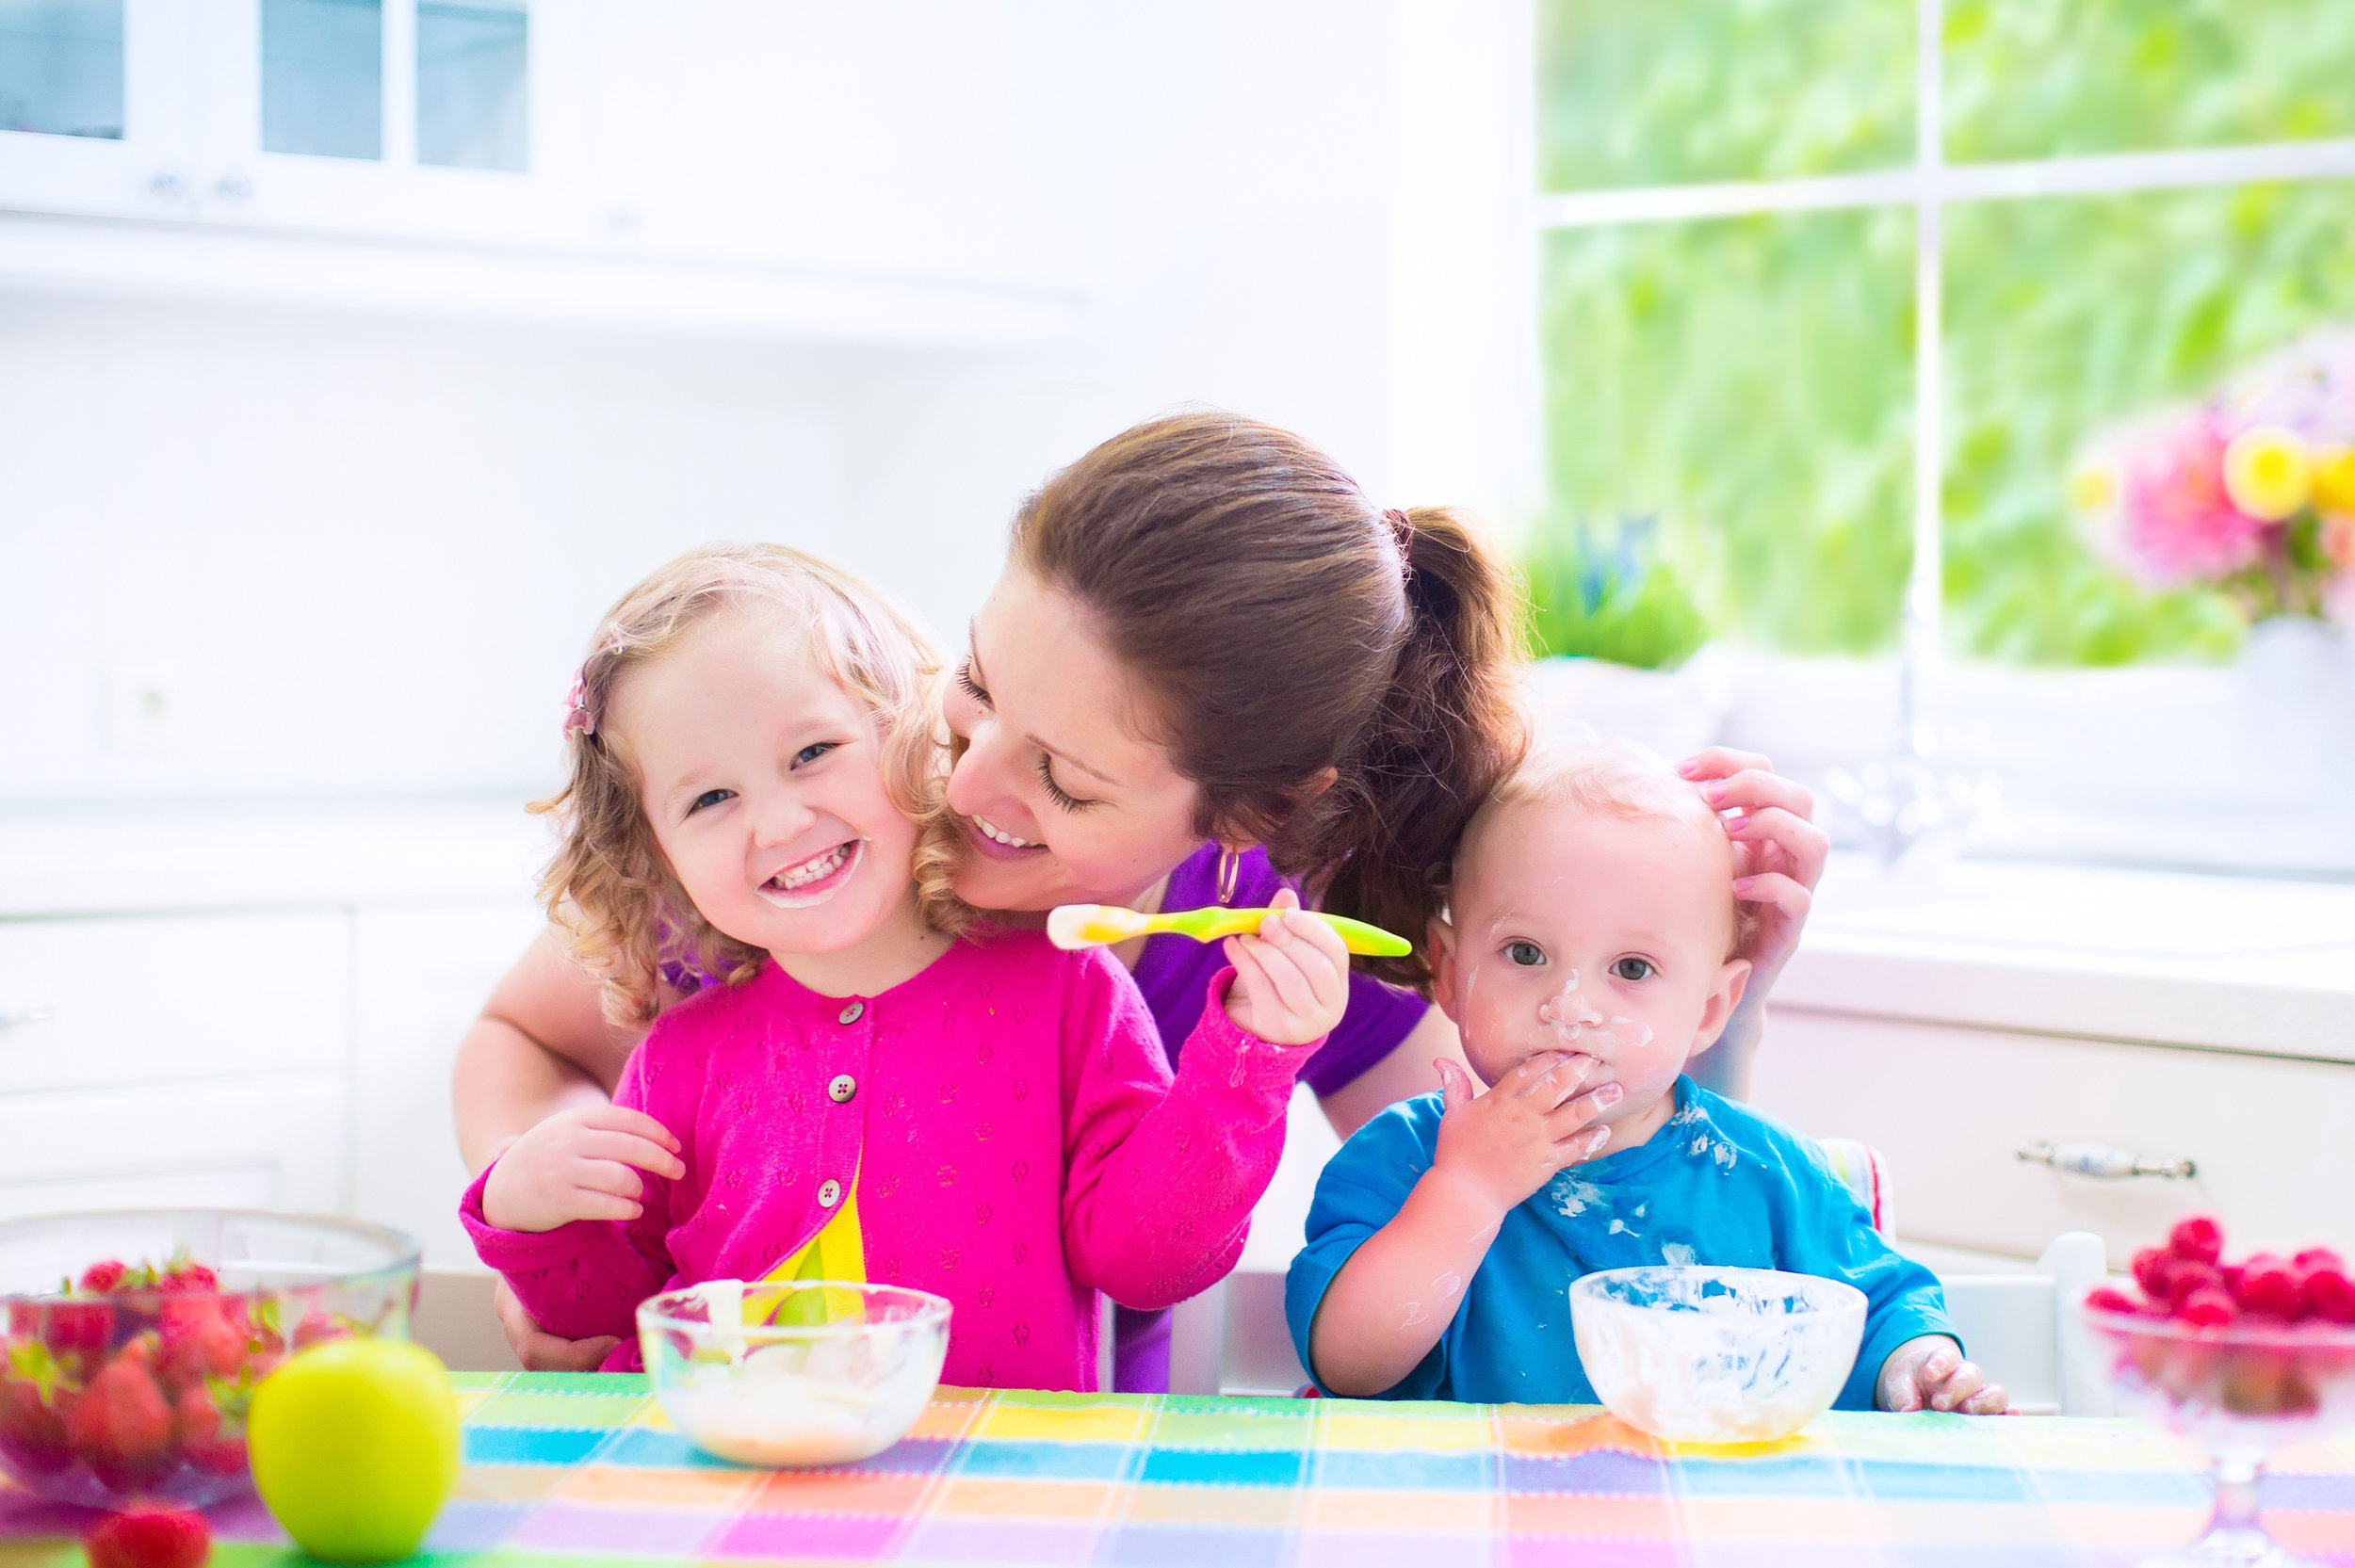 happy healthy child eating Learn to Eat. Love to Eat.